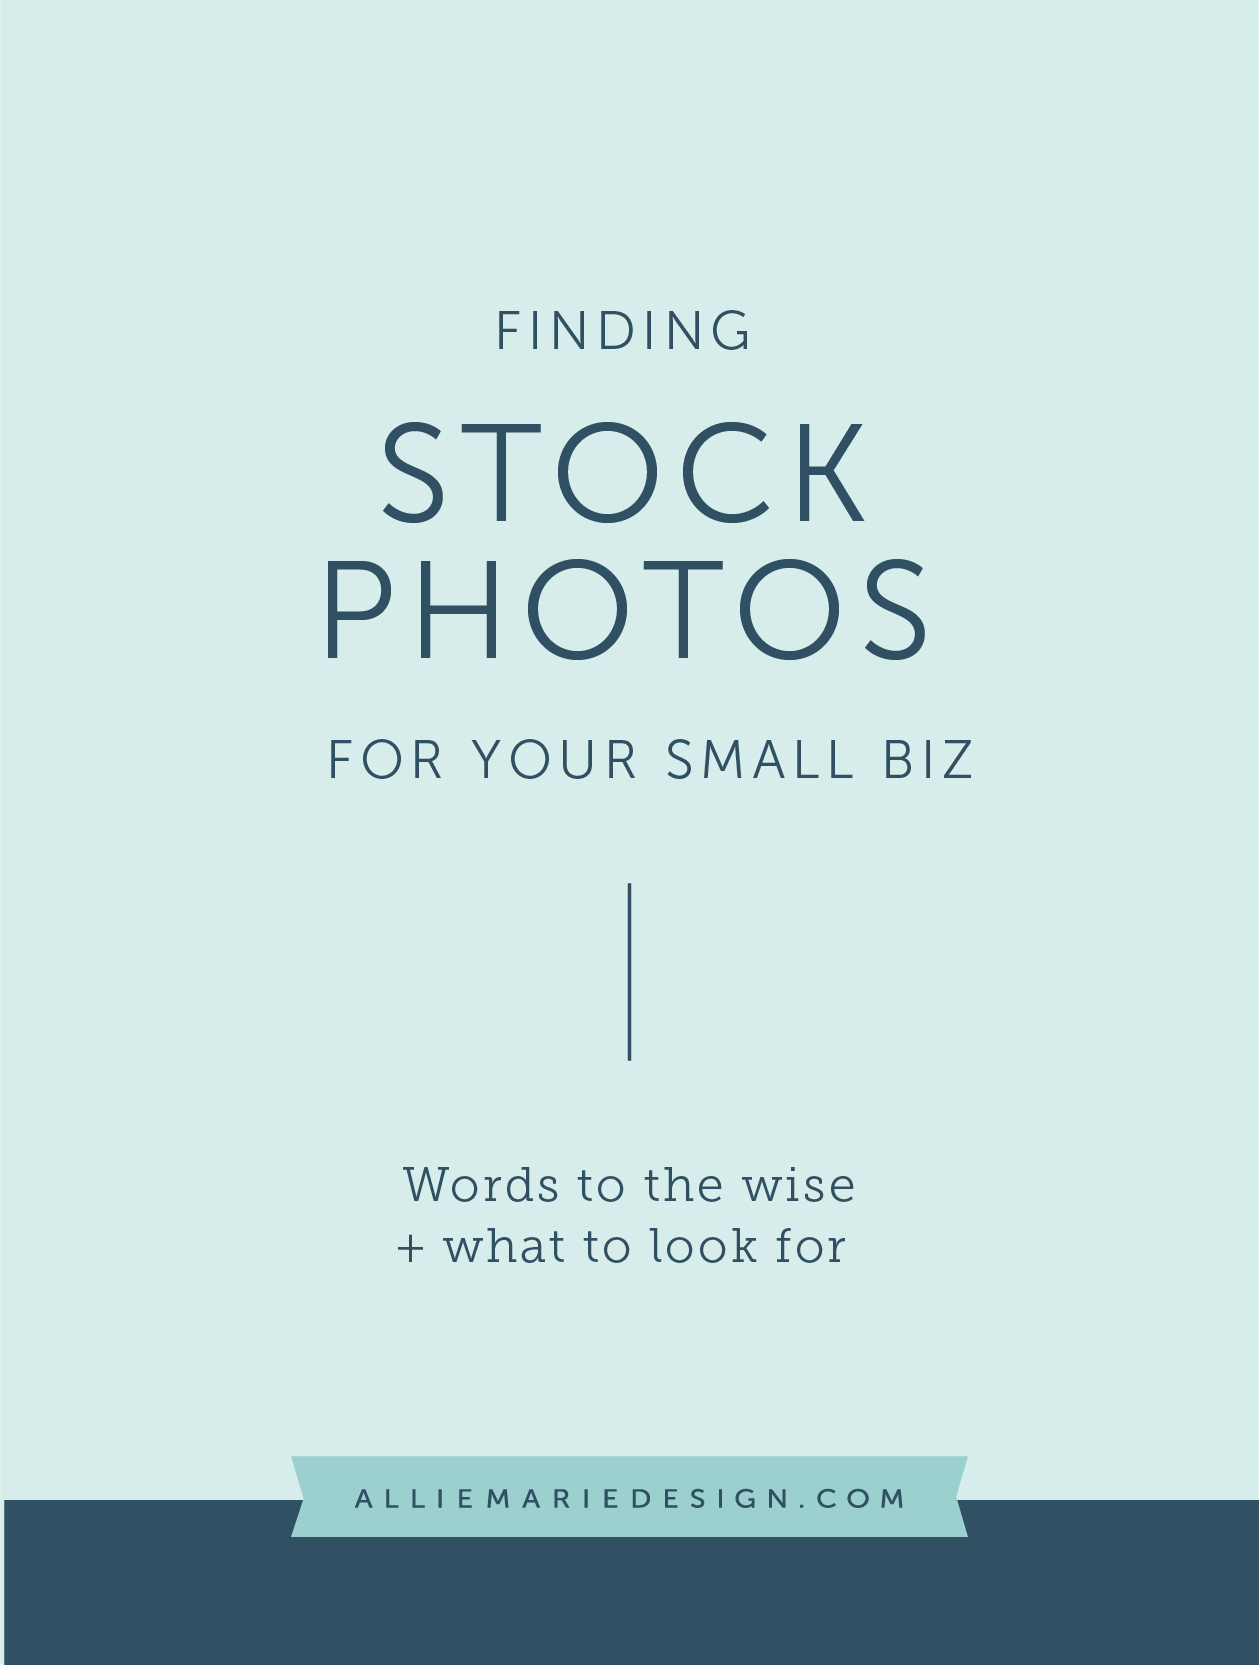 Finding Stock Photography for Your Small Biz: Words to the Wise + What to Look For